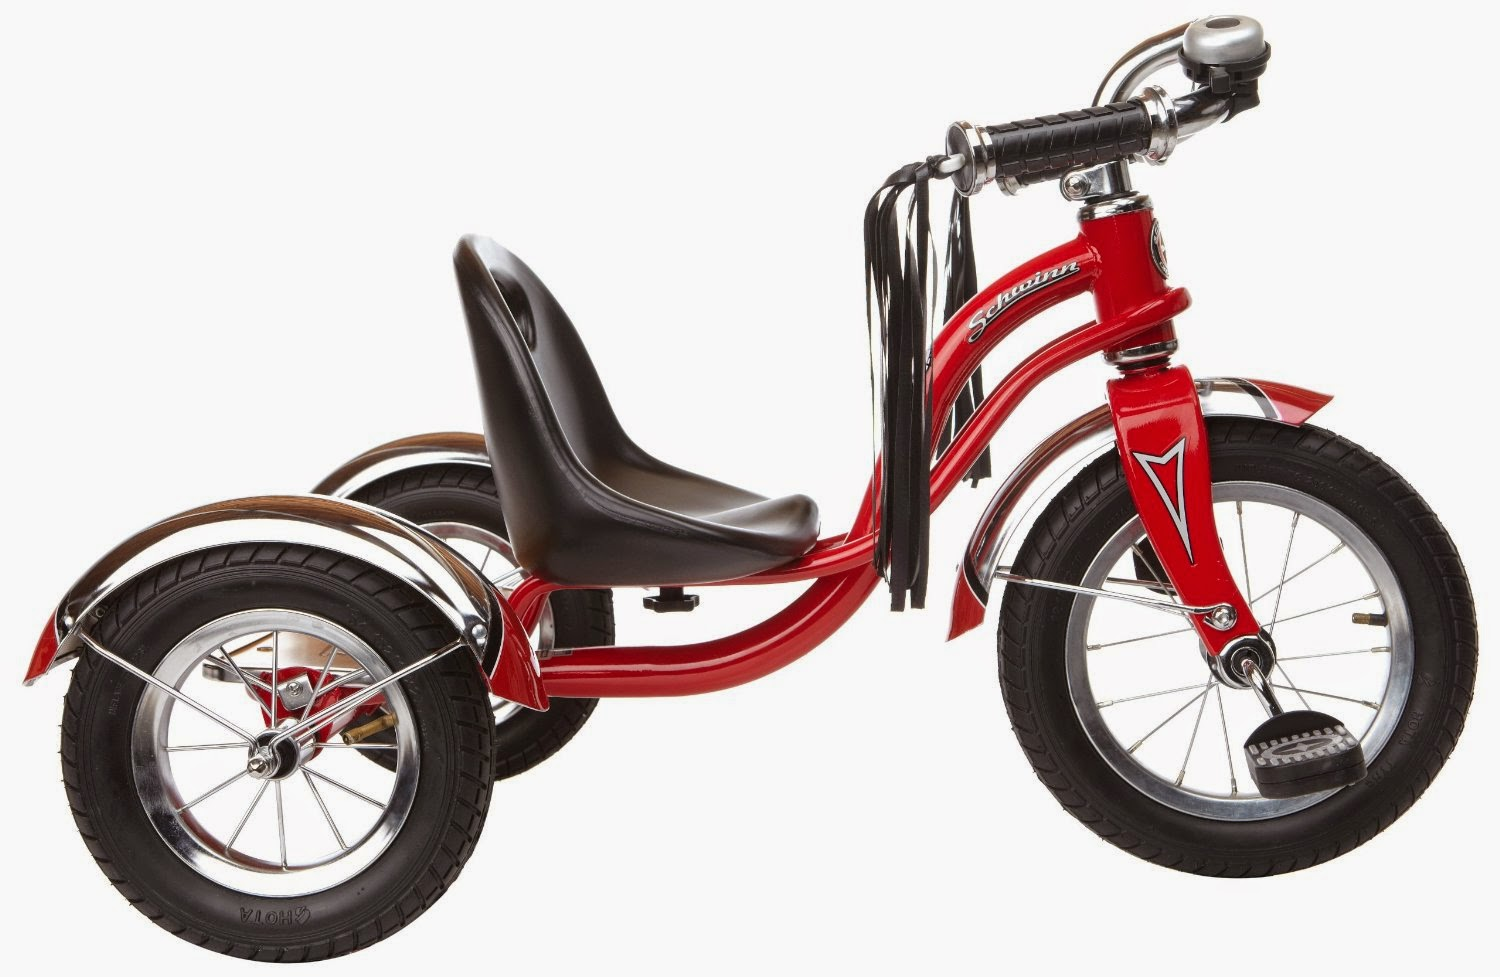 All further 22355983 furthermore Schwinn 12 Roadster Red Tricycle further 1118301299 moreover 23981457. on tricycle radio flyer logo